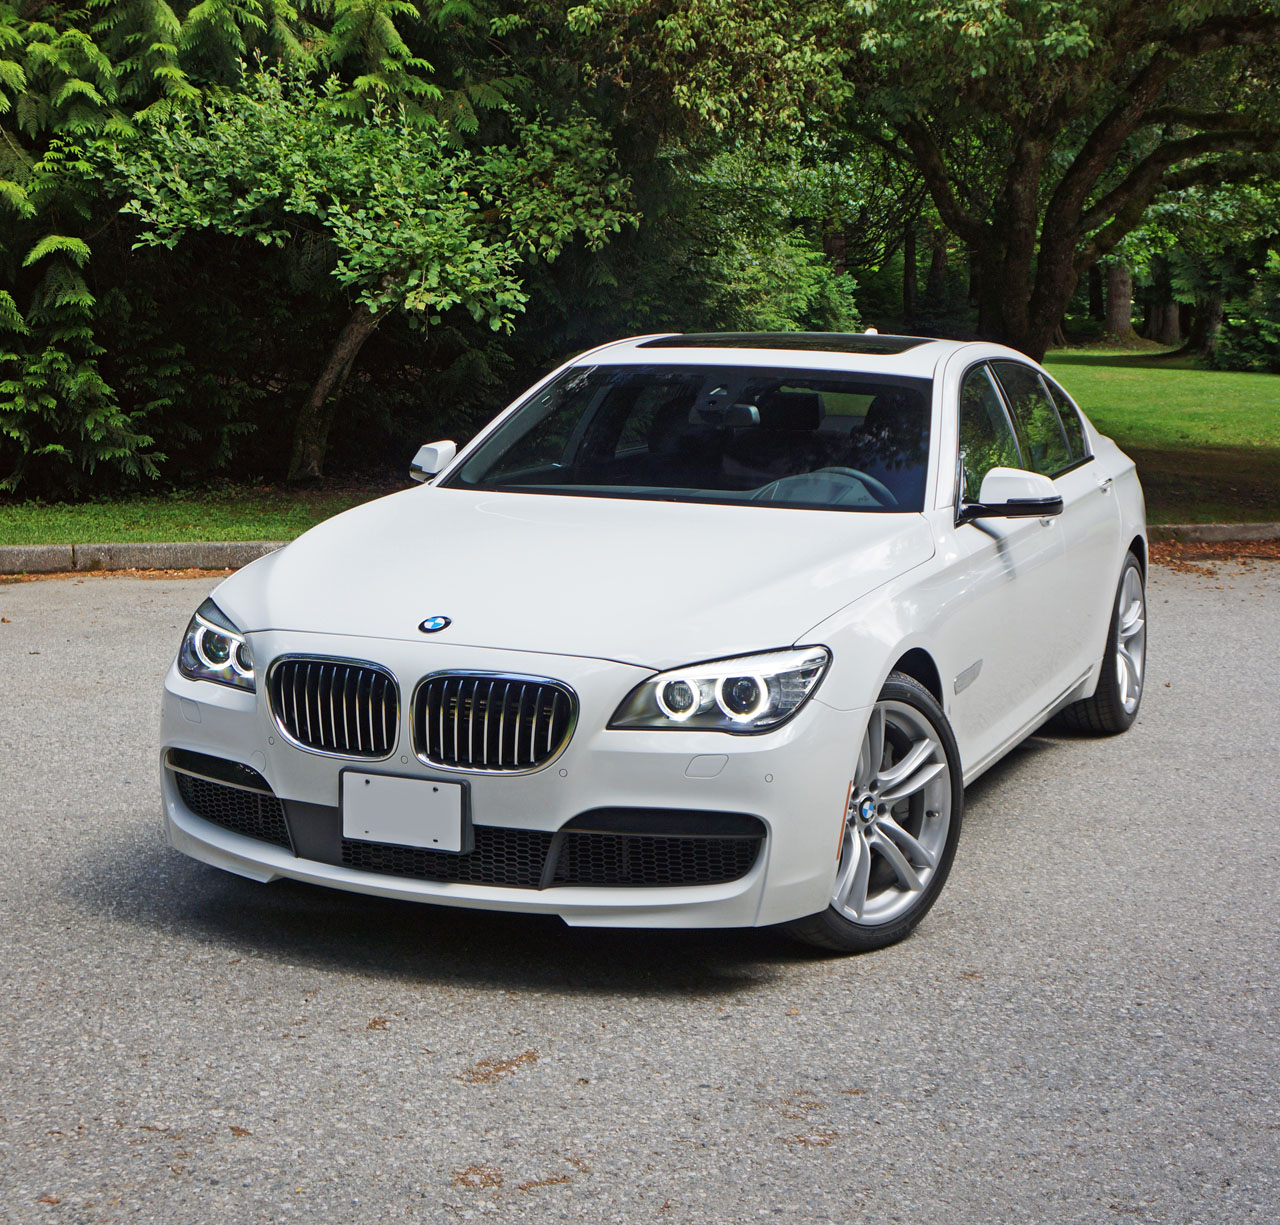 Bmw Xdrive System Review: 2014 BMW 750i XDrive Road Test Review